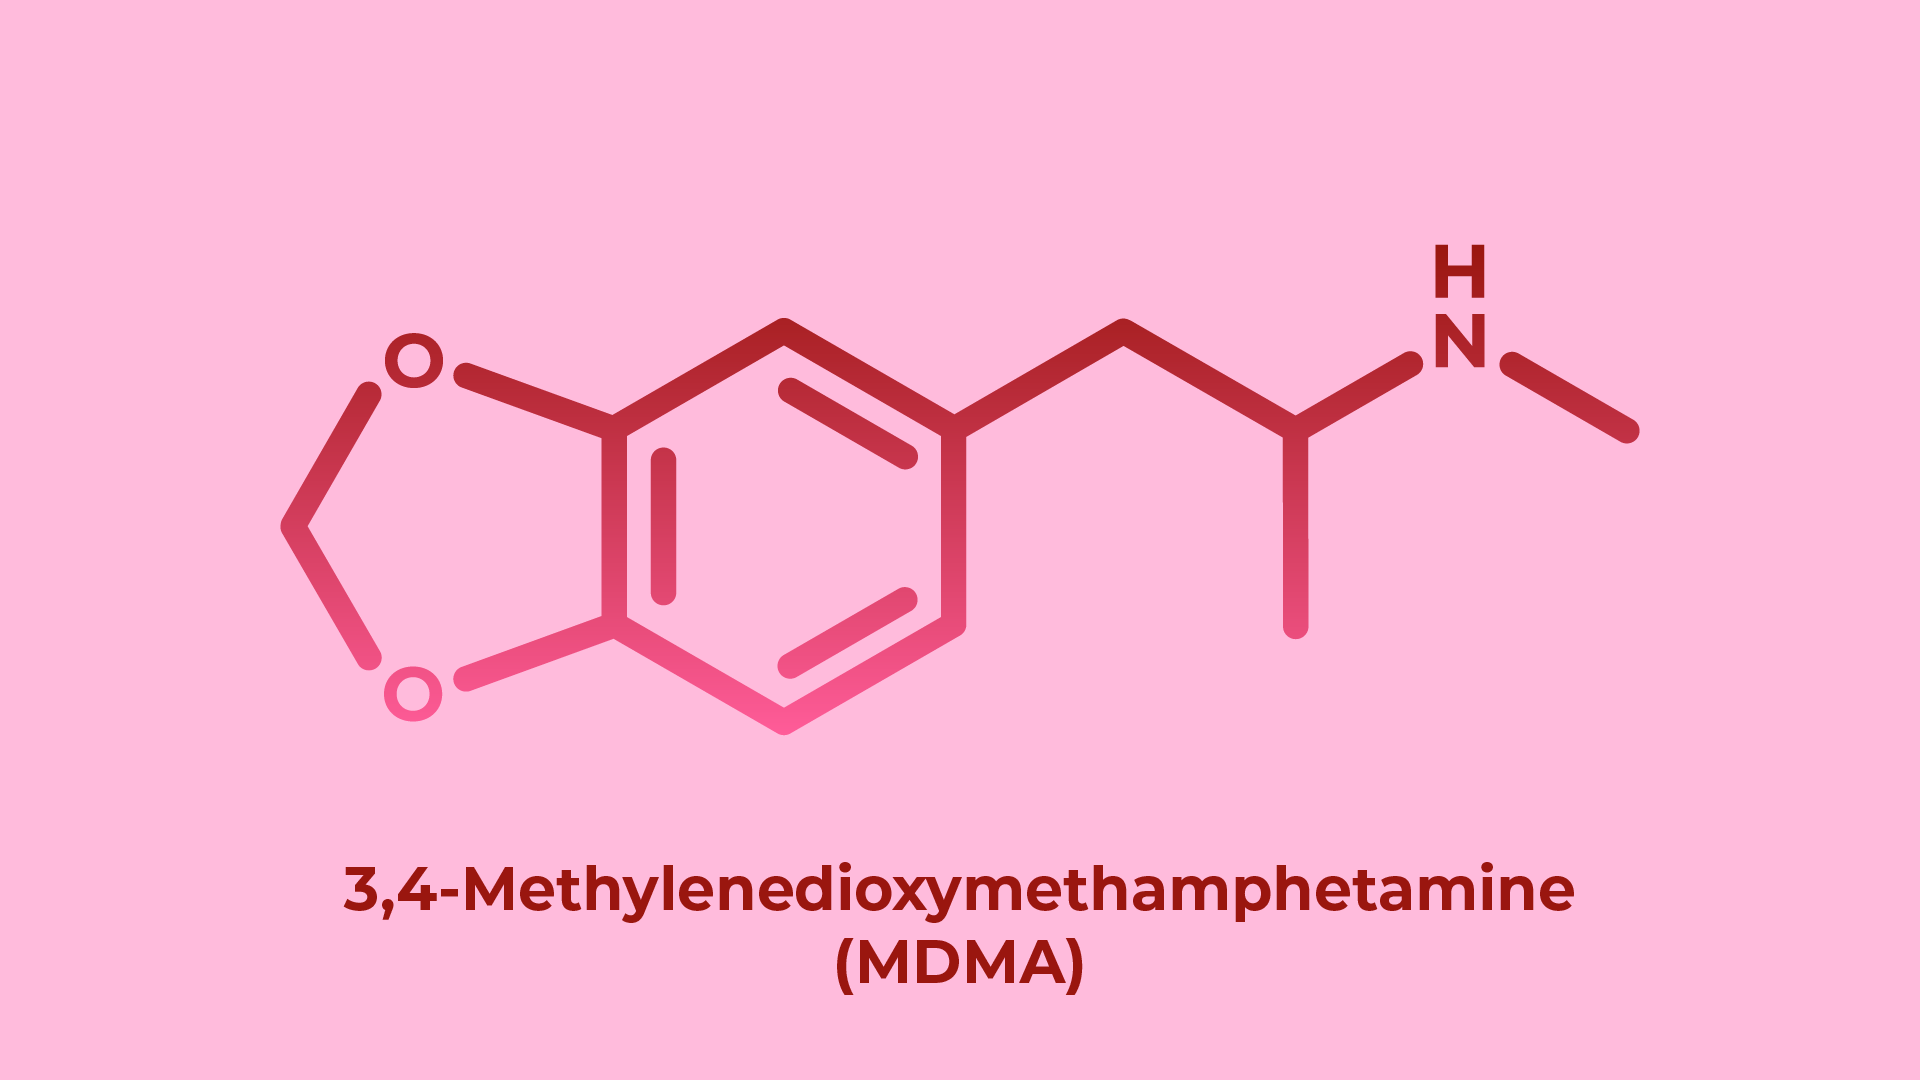 chemical structure of mdma molecule, the active compound in the stimulant drug ecstasy